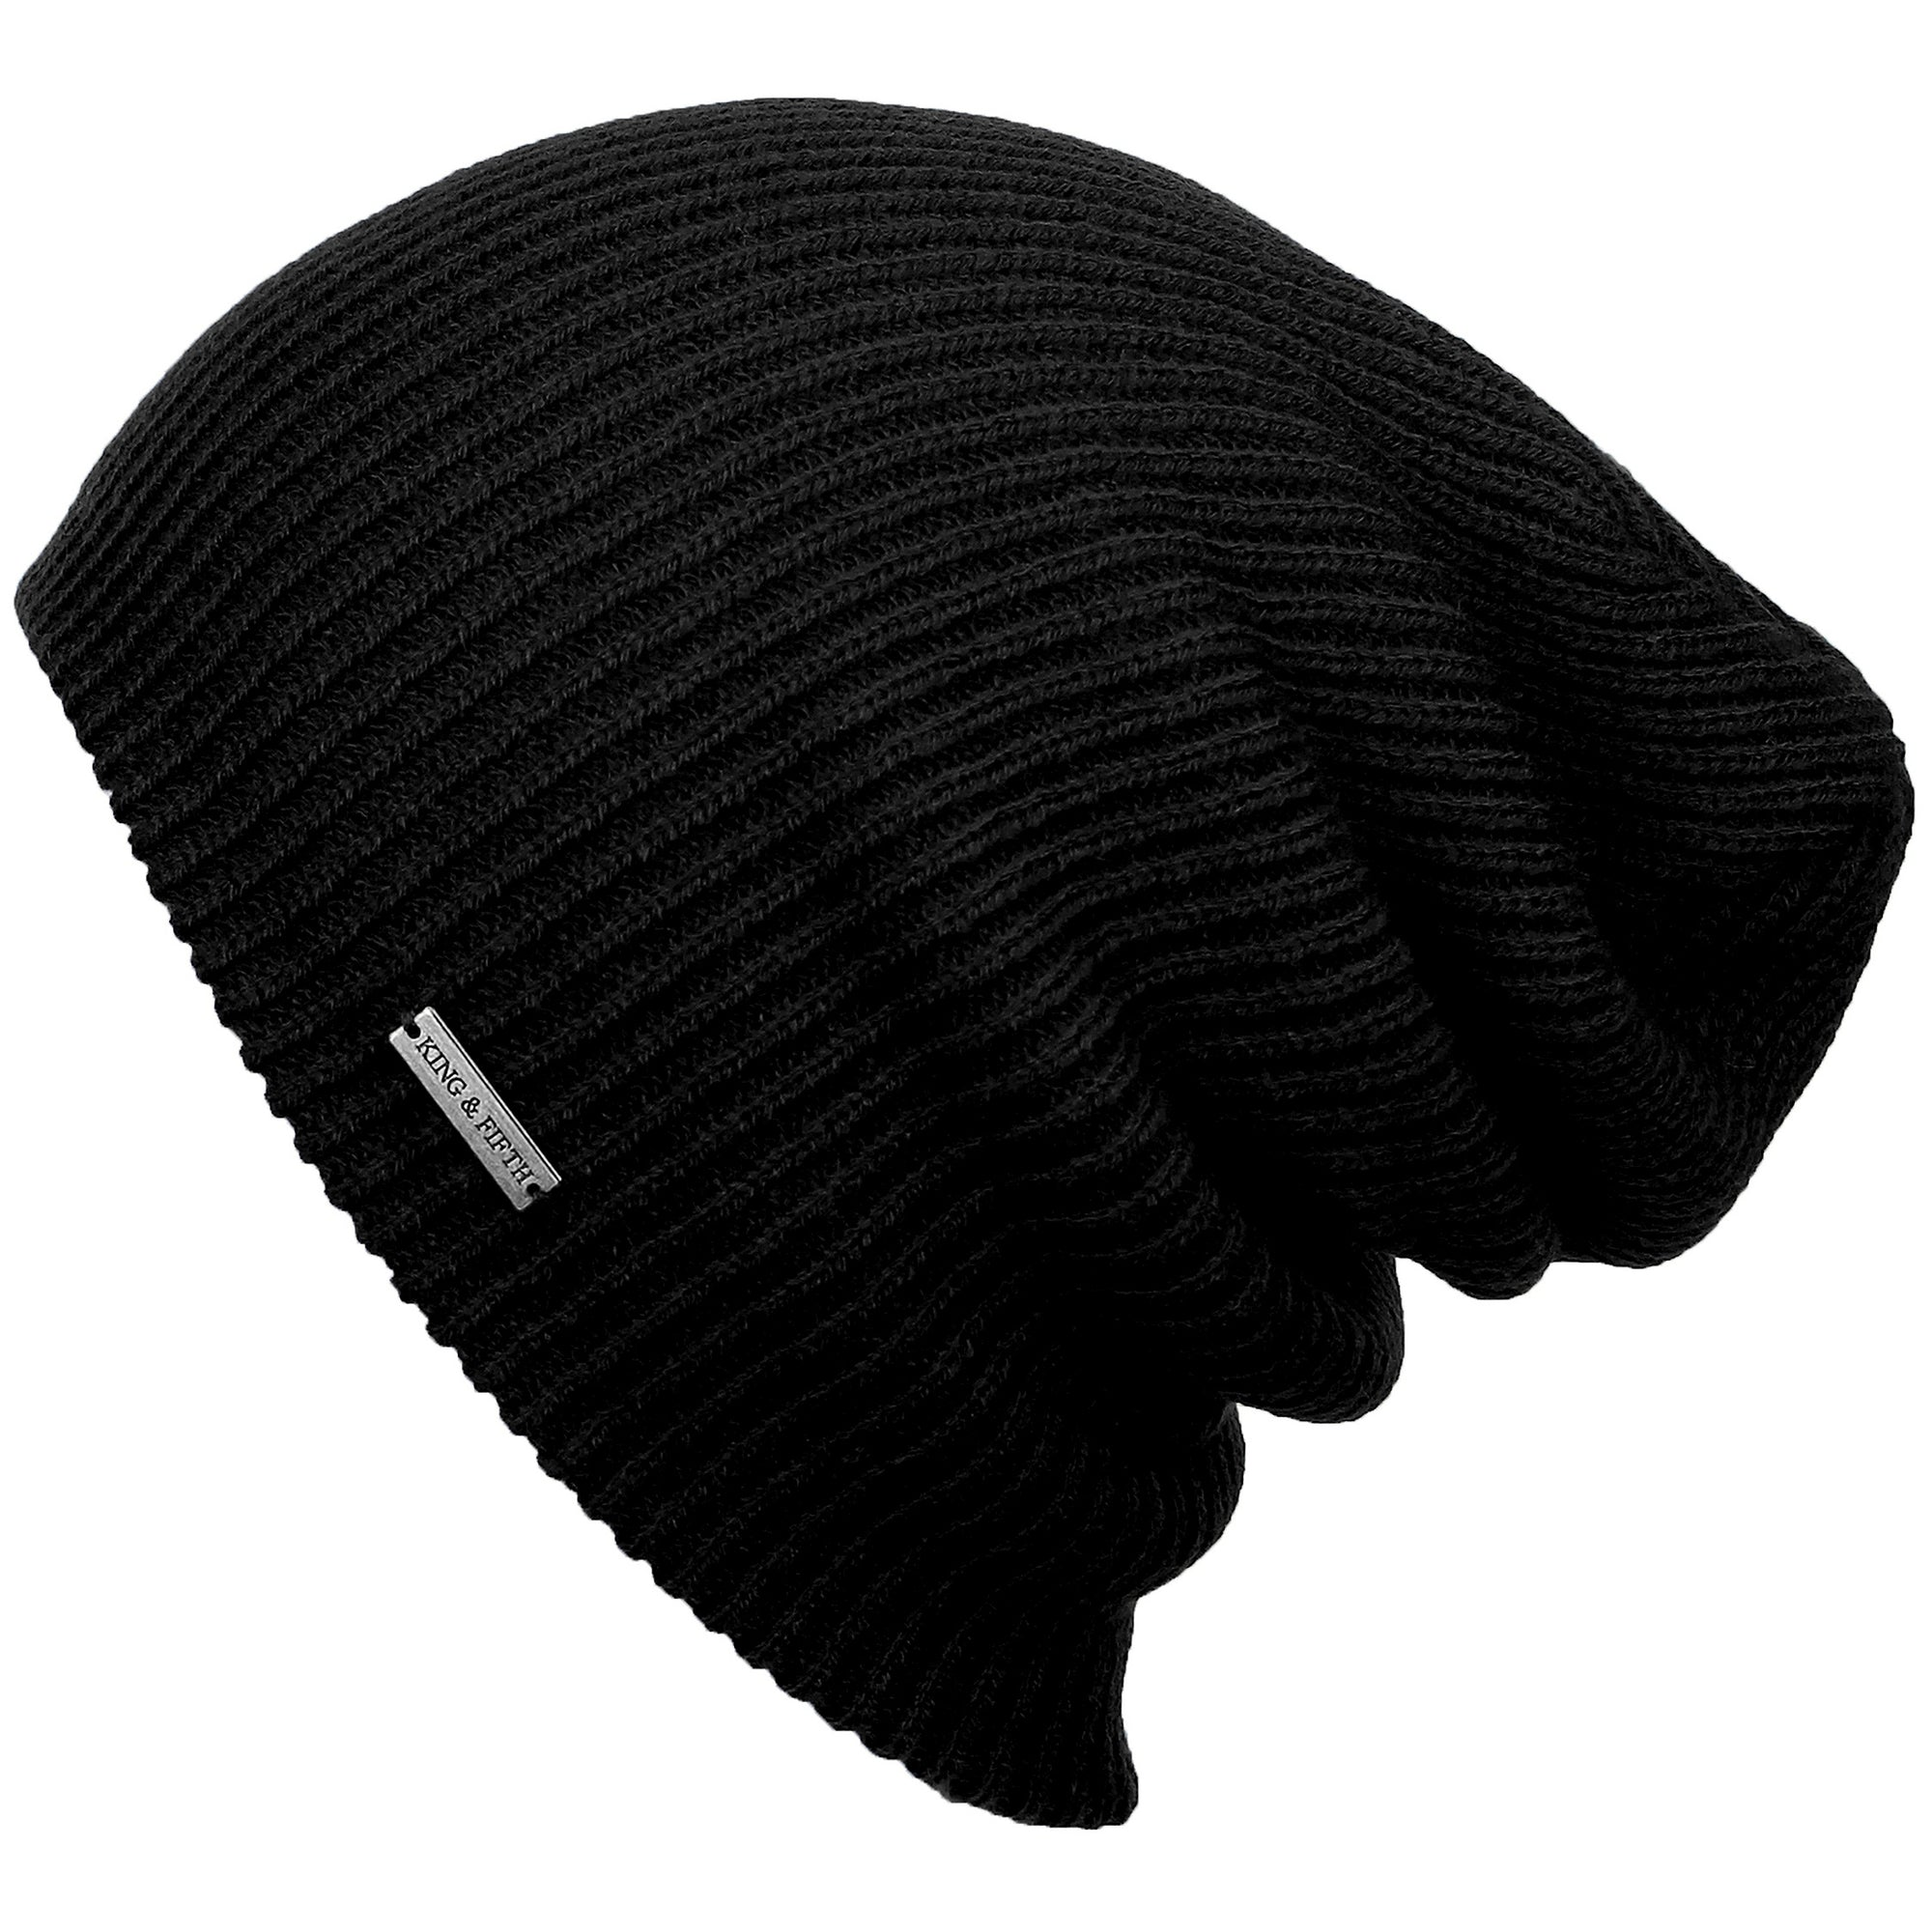 Mens Slouchy Beanie - The Forte Black